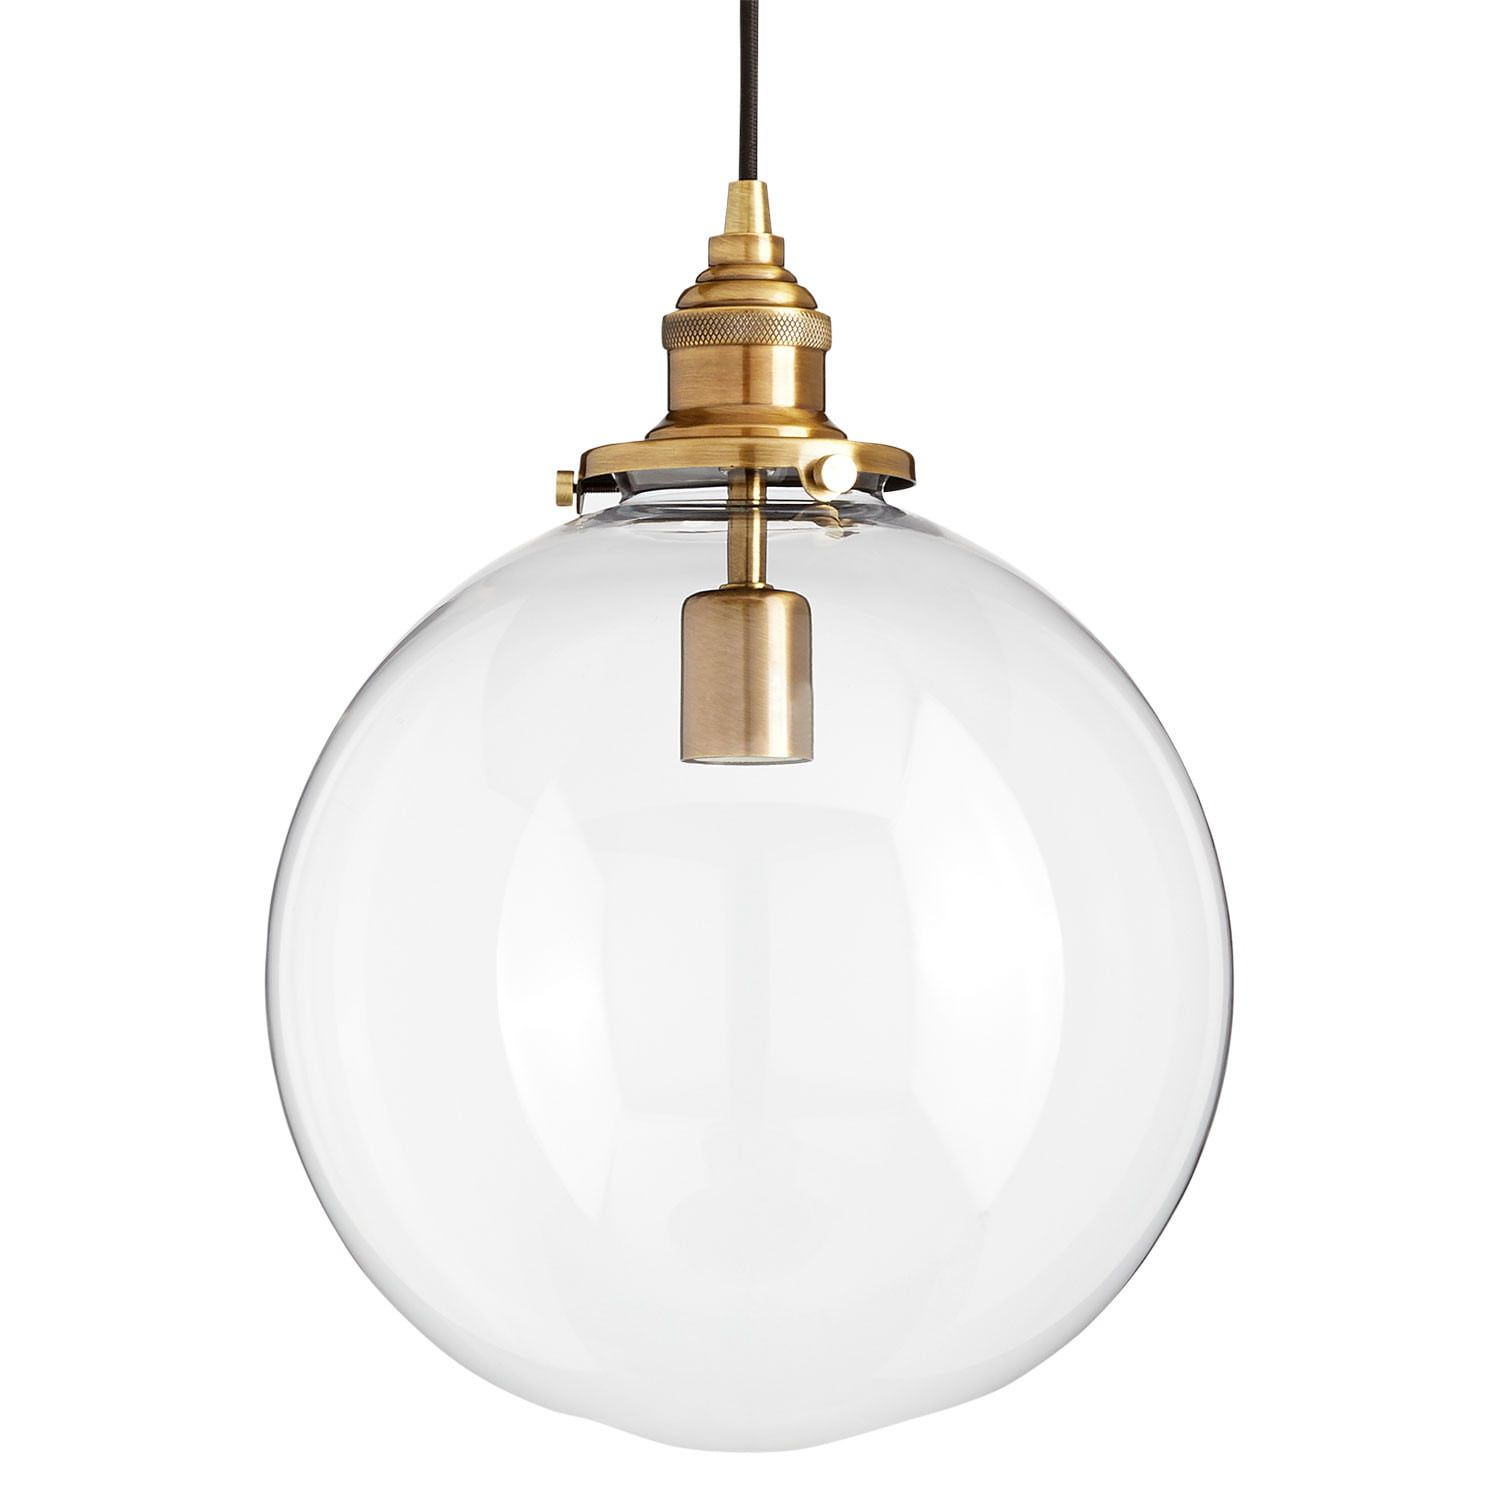 Orchard Pendant Light Single Light Clear Shade Chandeliers